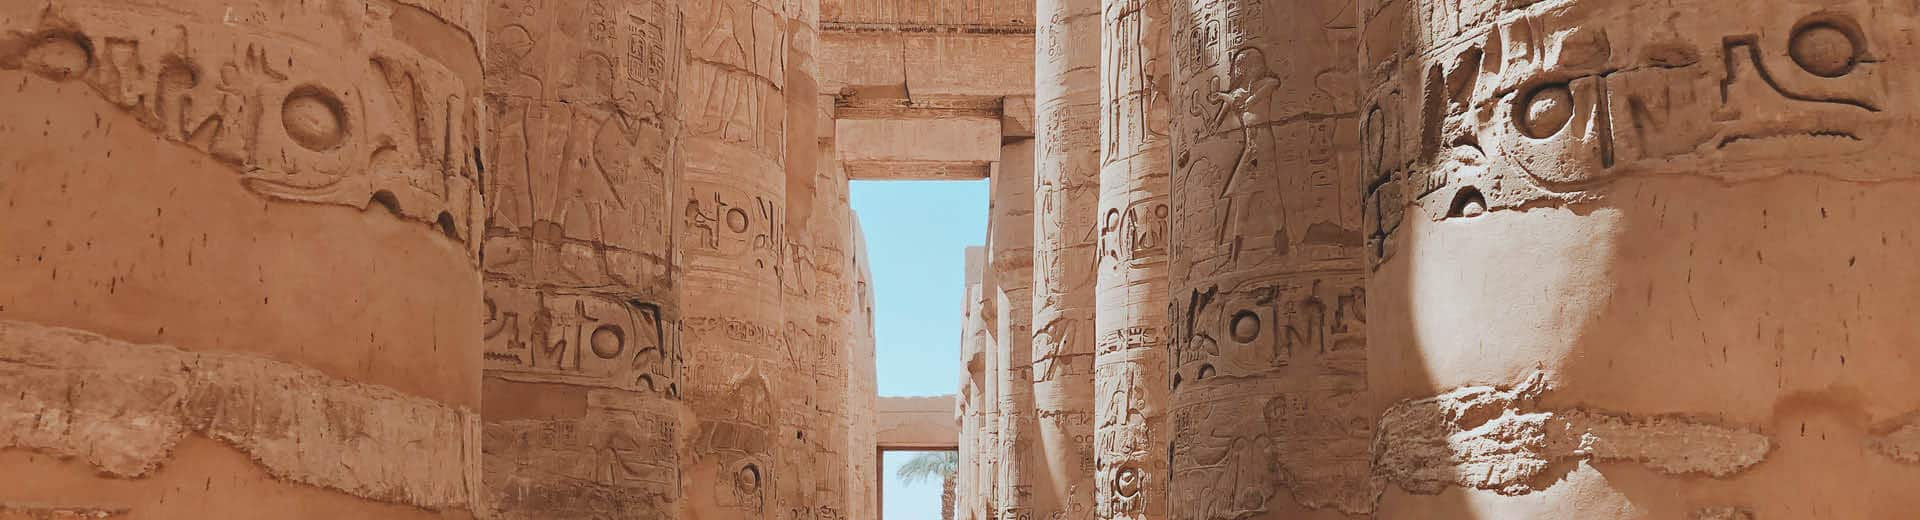 indagare departures treasures of egypt temple columns